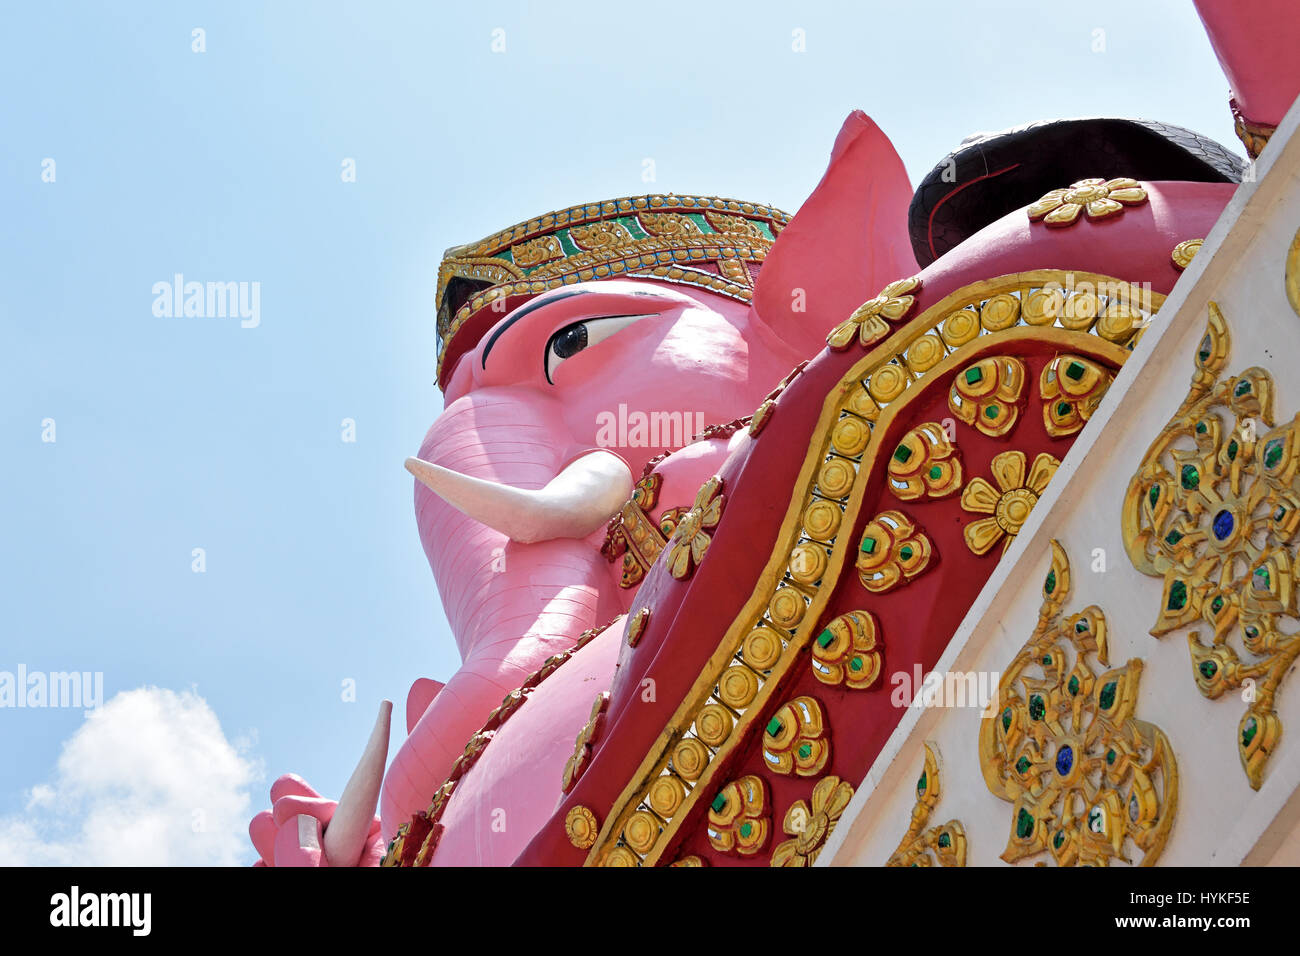 Looking uo at the pink elephant (representing Ganesh) in Wat Phrong Akat in Bang Nam Phriao District in Central - Stock Image